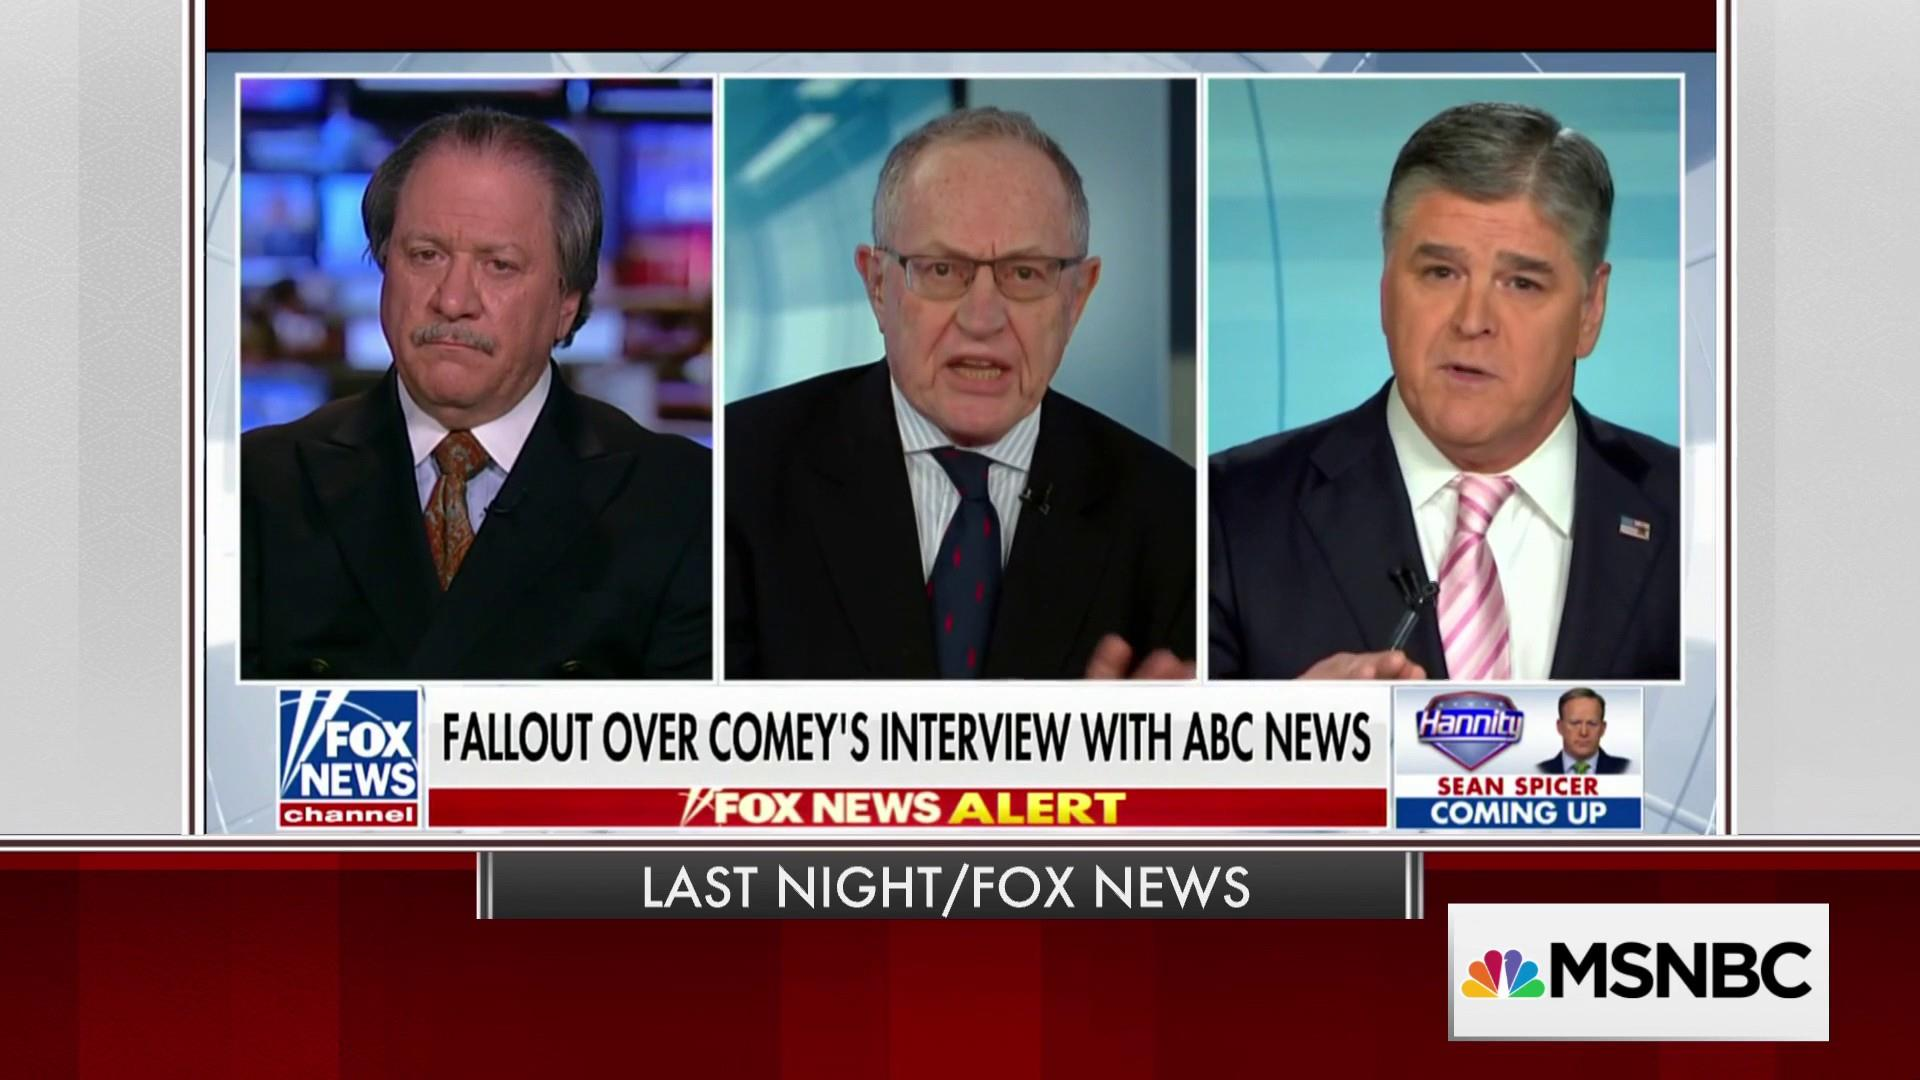 Hannity downplays relationship, but is someone lying?